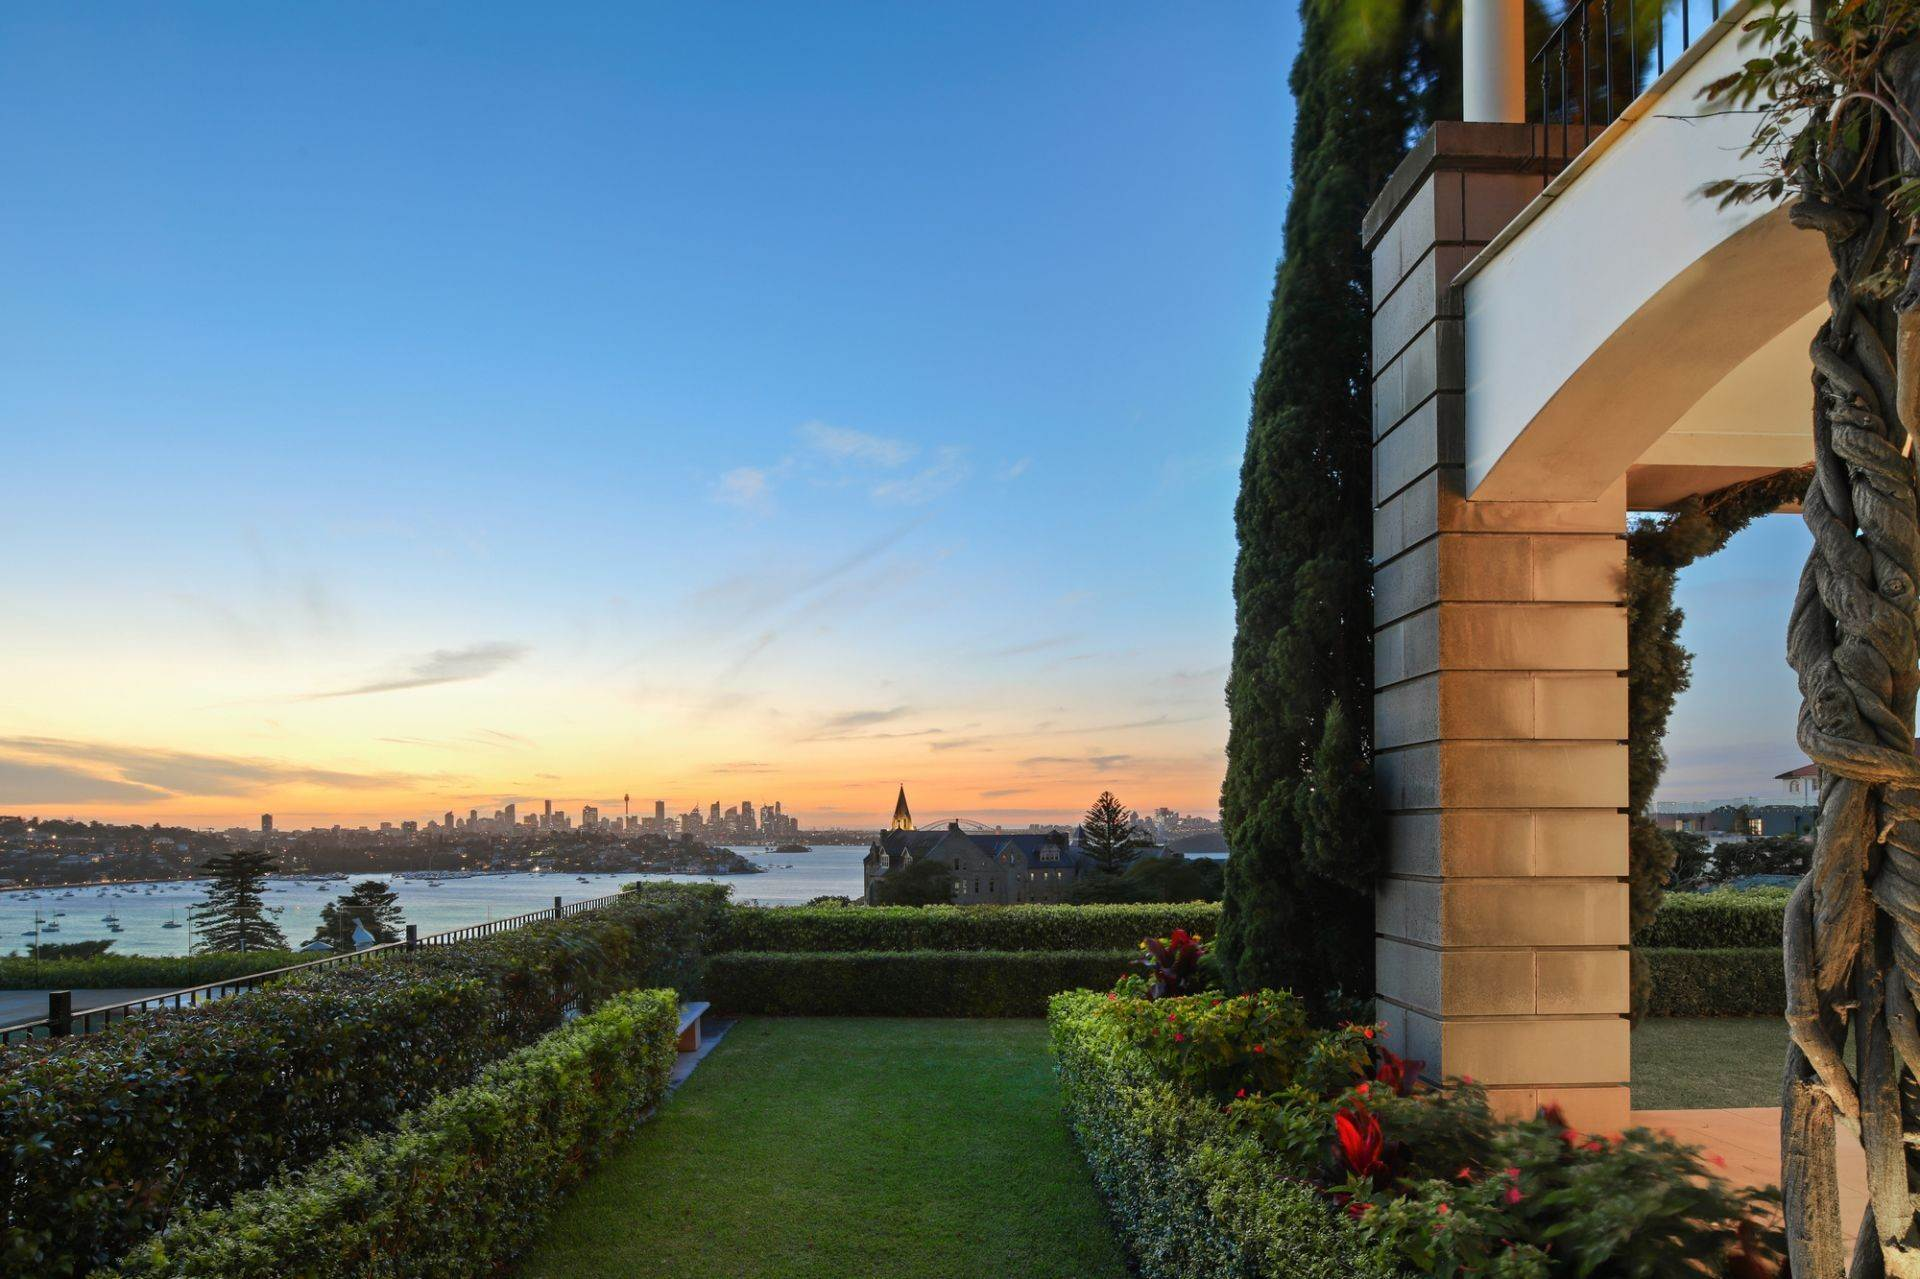 Single Family Home for Sale at Magnificent hillside estate, some of Australia's finest views Pure luxury, world class Sydney panoramas 7 Hillside Avenue Vaucluse, New South Wales,2030 Australia